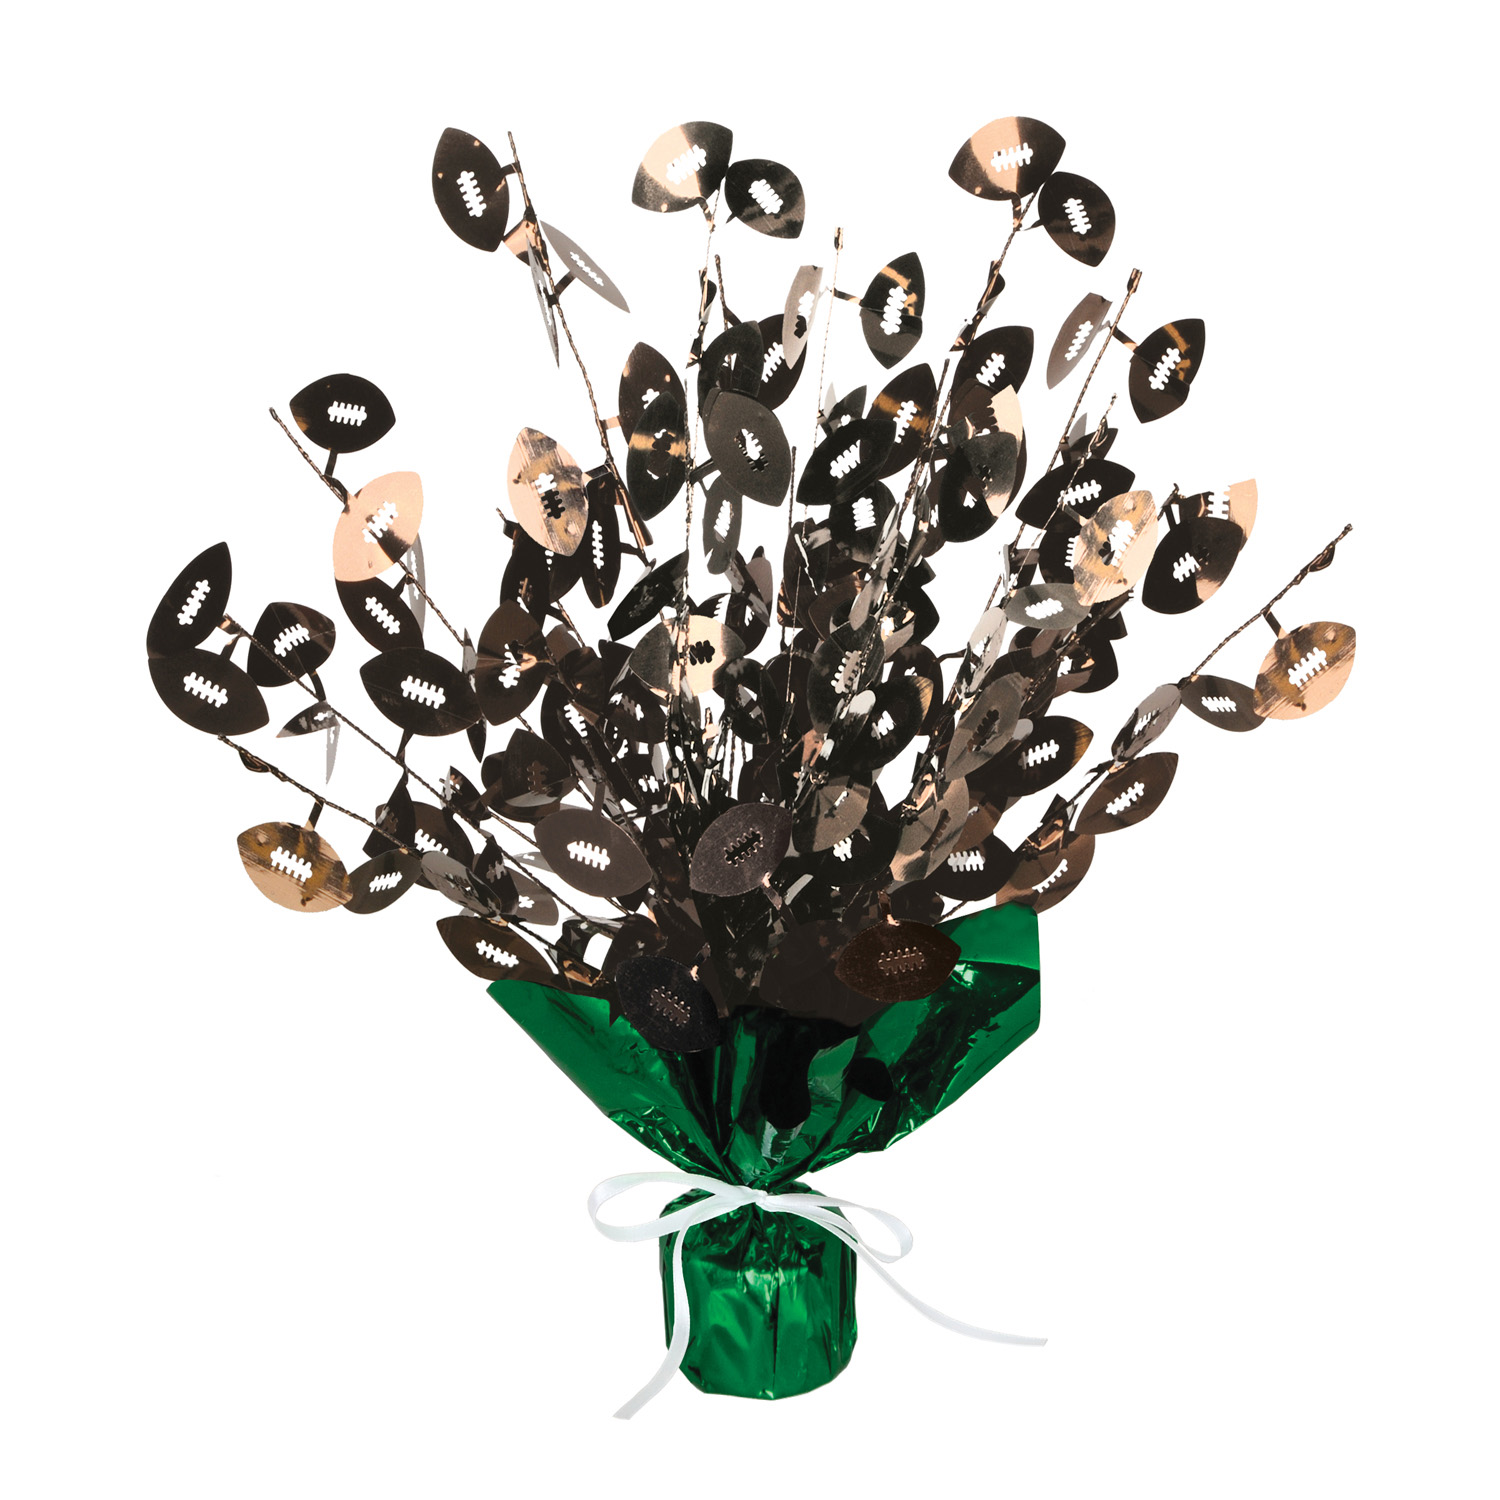 Football Gleam N Burst Centerpiece (Pack of 12) Cheap Centerpiece, Football centerpiece, Football Decor, Cheap Football supplies, Game Day, Table Centerpieces, Wholesale decorations, Cheap party goods, Tissue Centerpieces, Inexpensive party